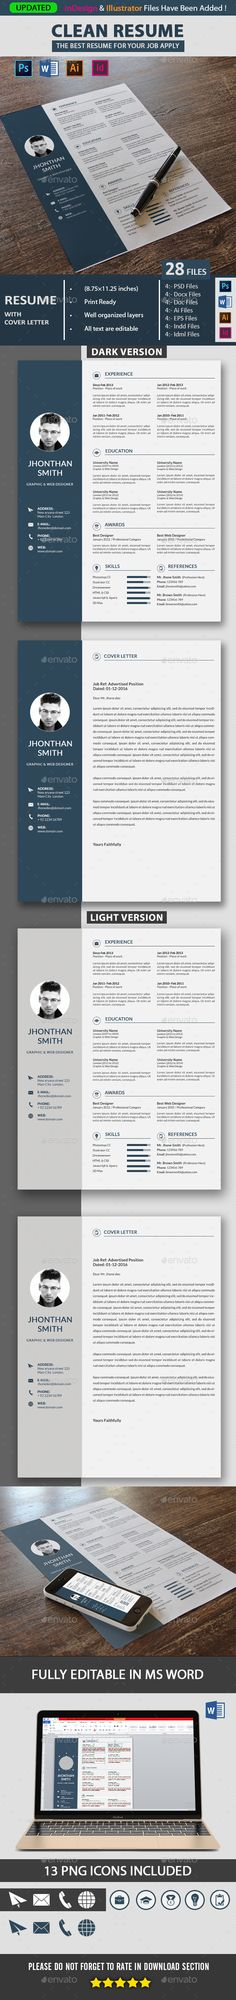 Resume Cv template, Template and Business - net resume